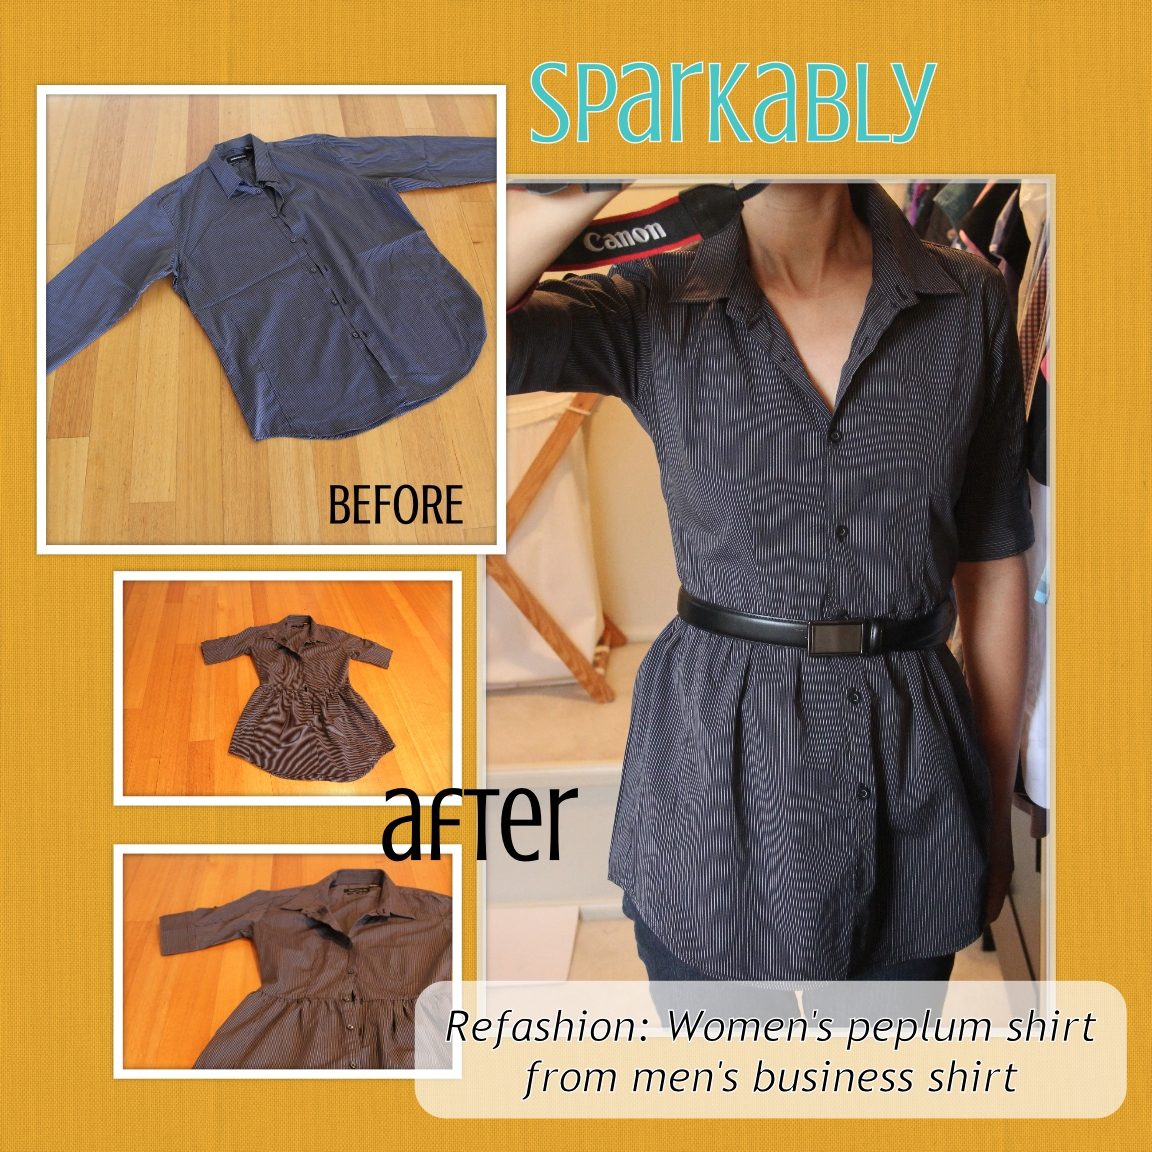 SparkablyRefashion TutorialMens shirt to womens peplum shirt